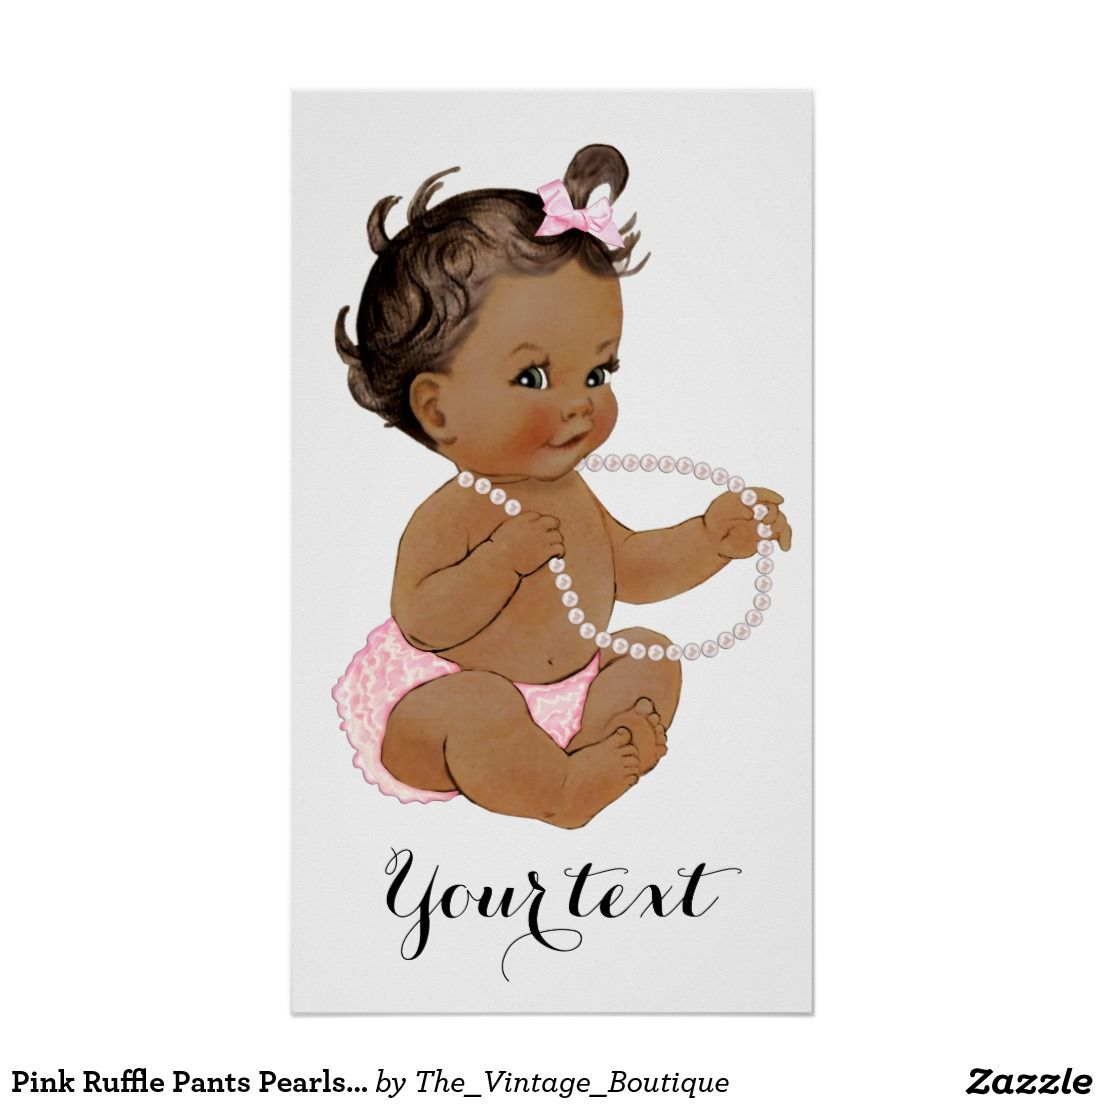 Pink Ruffle Pants Pearls Ethnic Girl Baby Shower Poster.